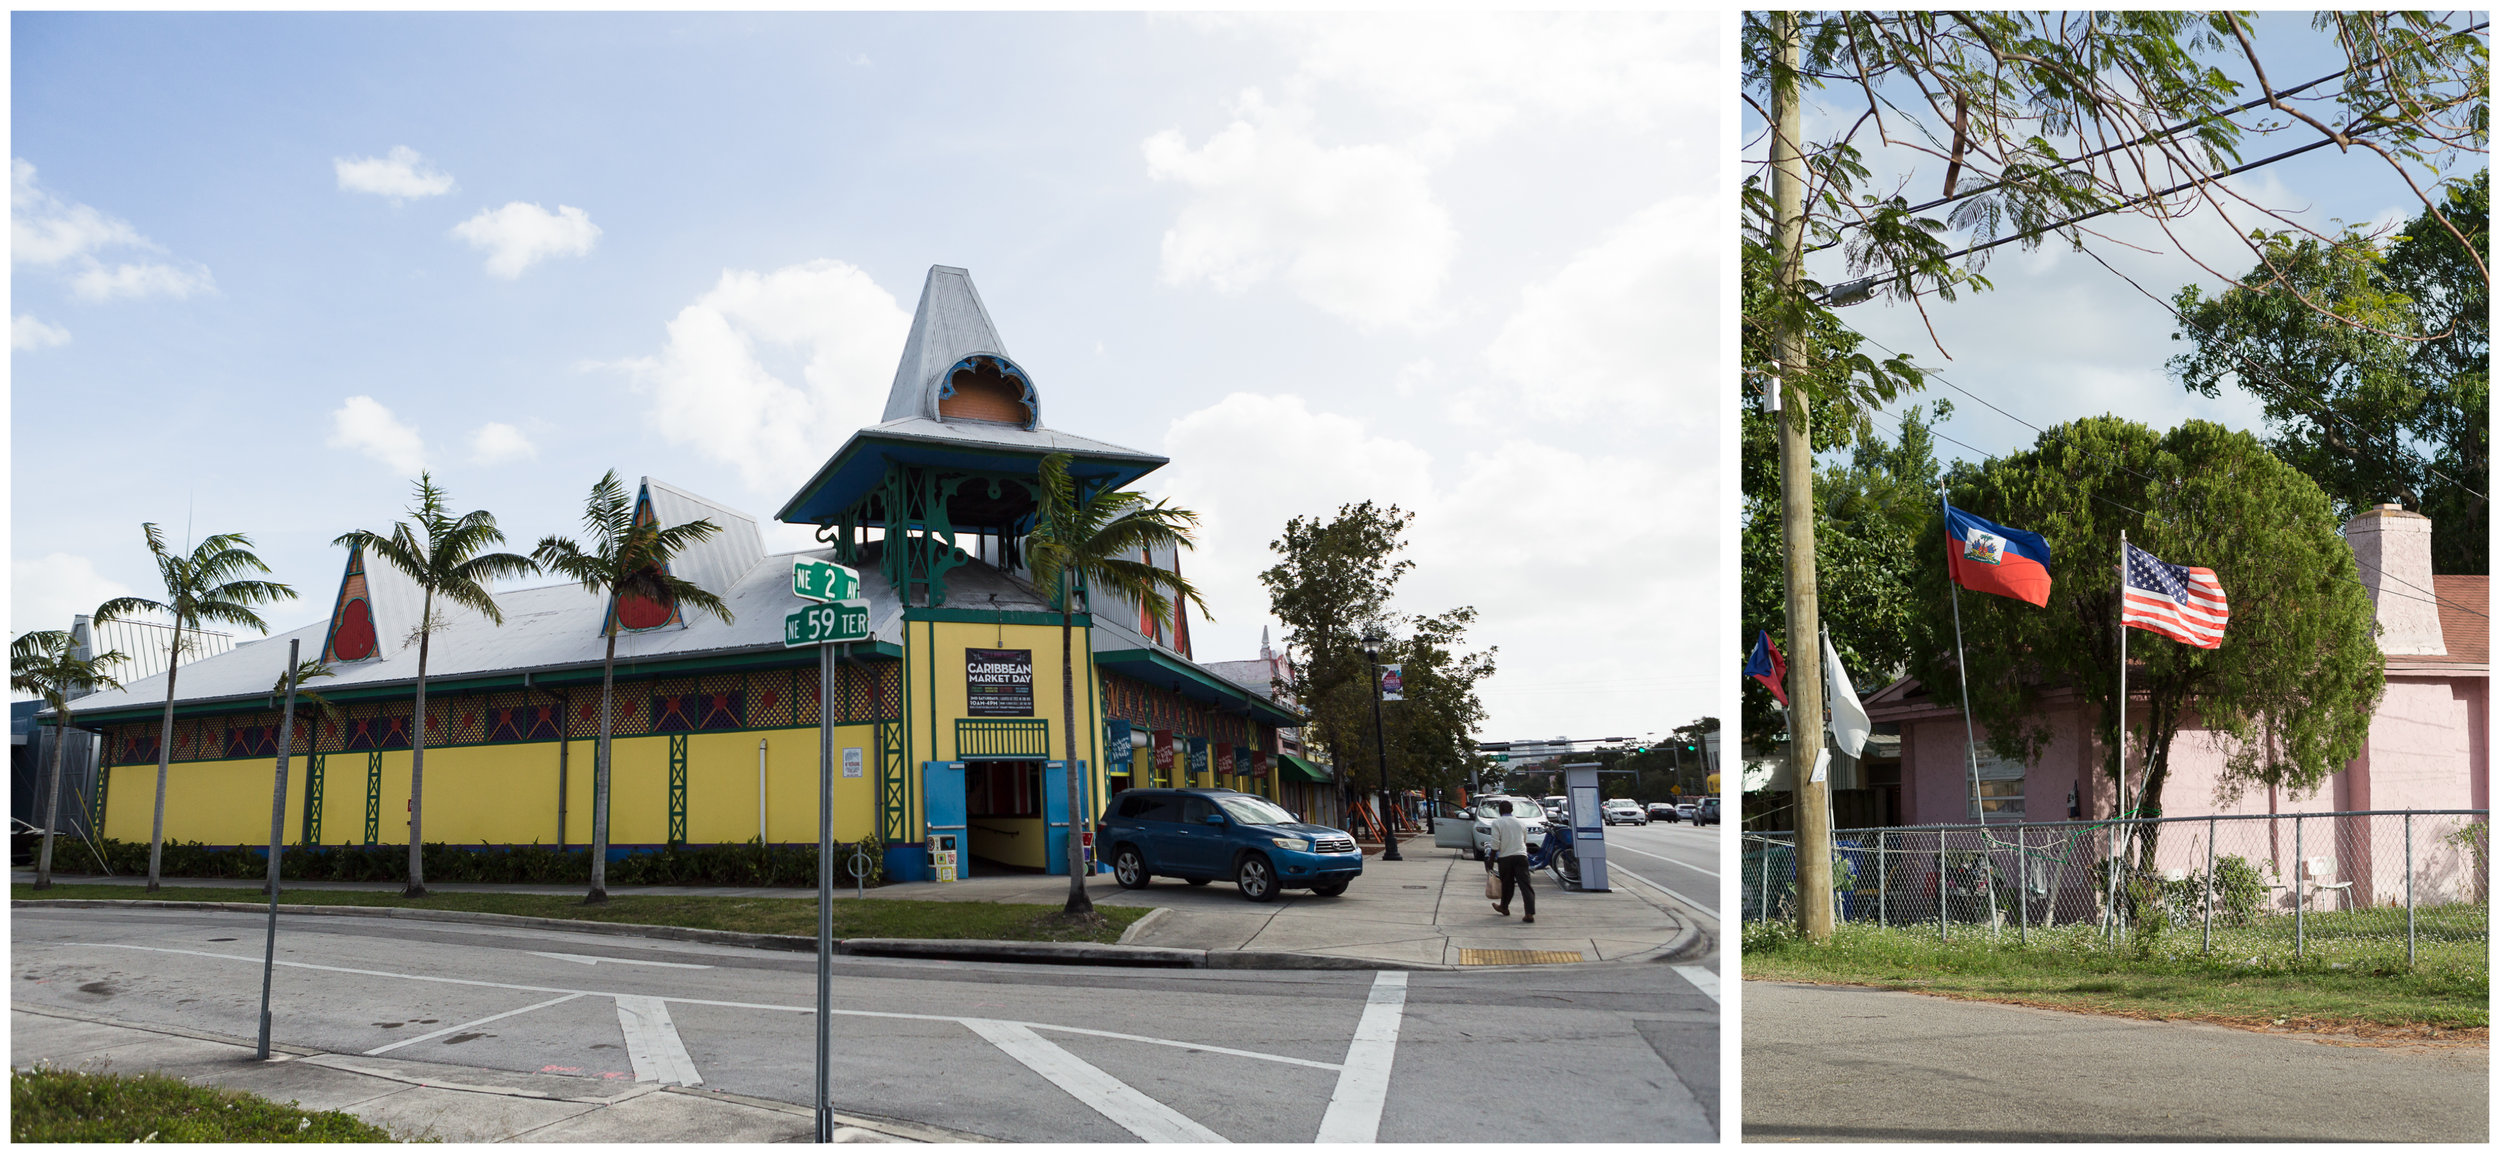 The Caribbean Marketplace located on NE 2nd Avenue and an American. The marketplace was built to drive more traffic into this part of town, which was once a cultural hub of the community. The building is still struggling to find its identity as the avenue continues to change.